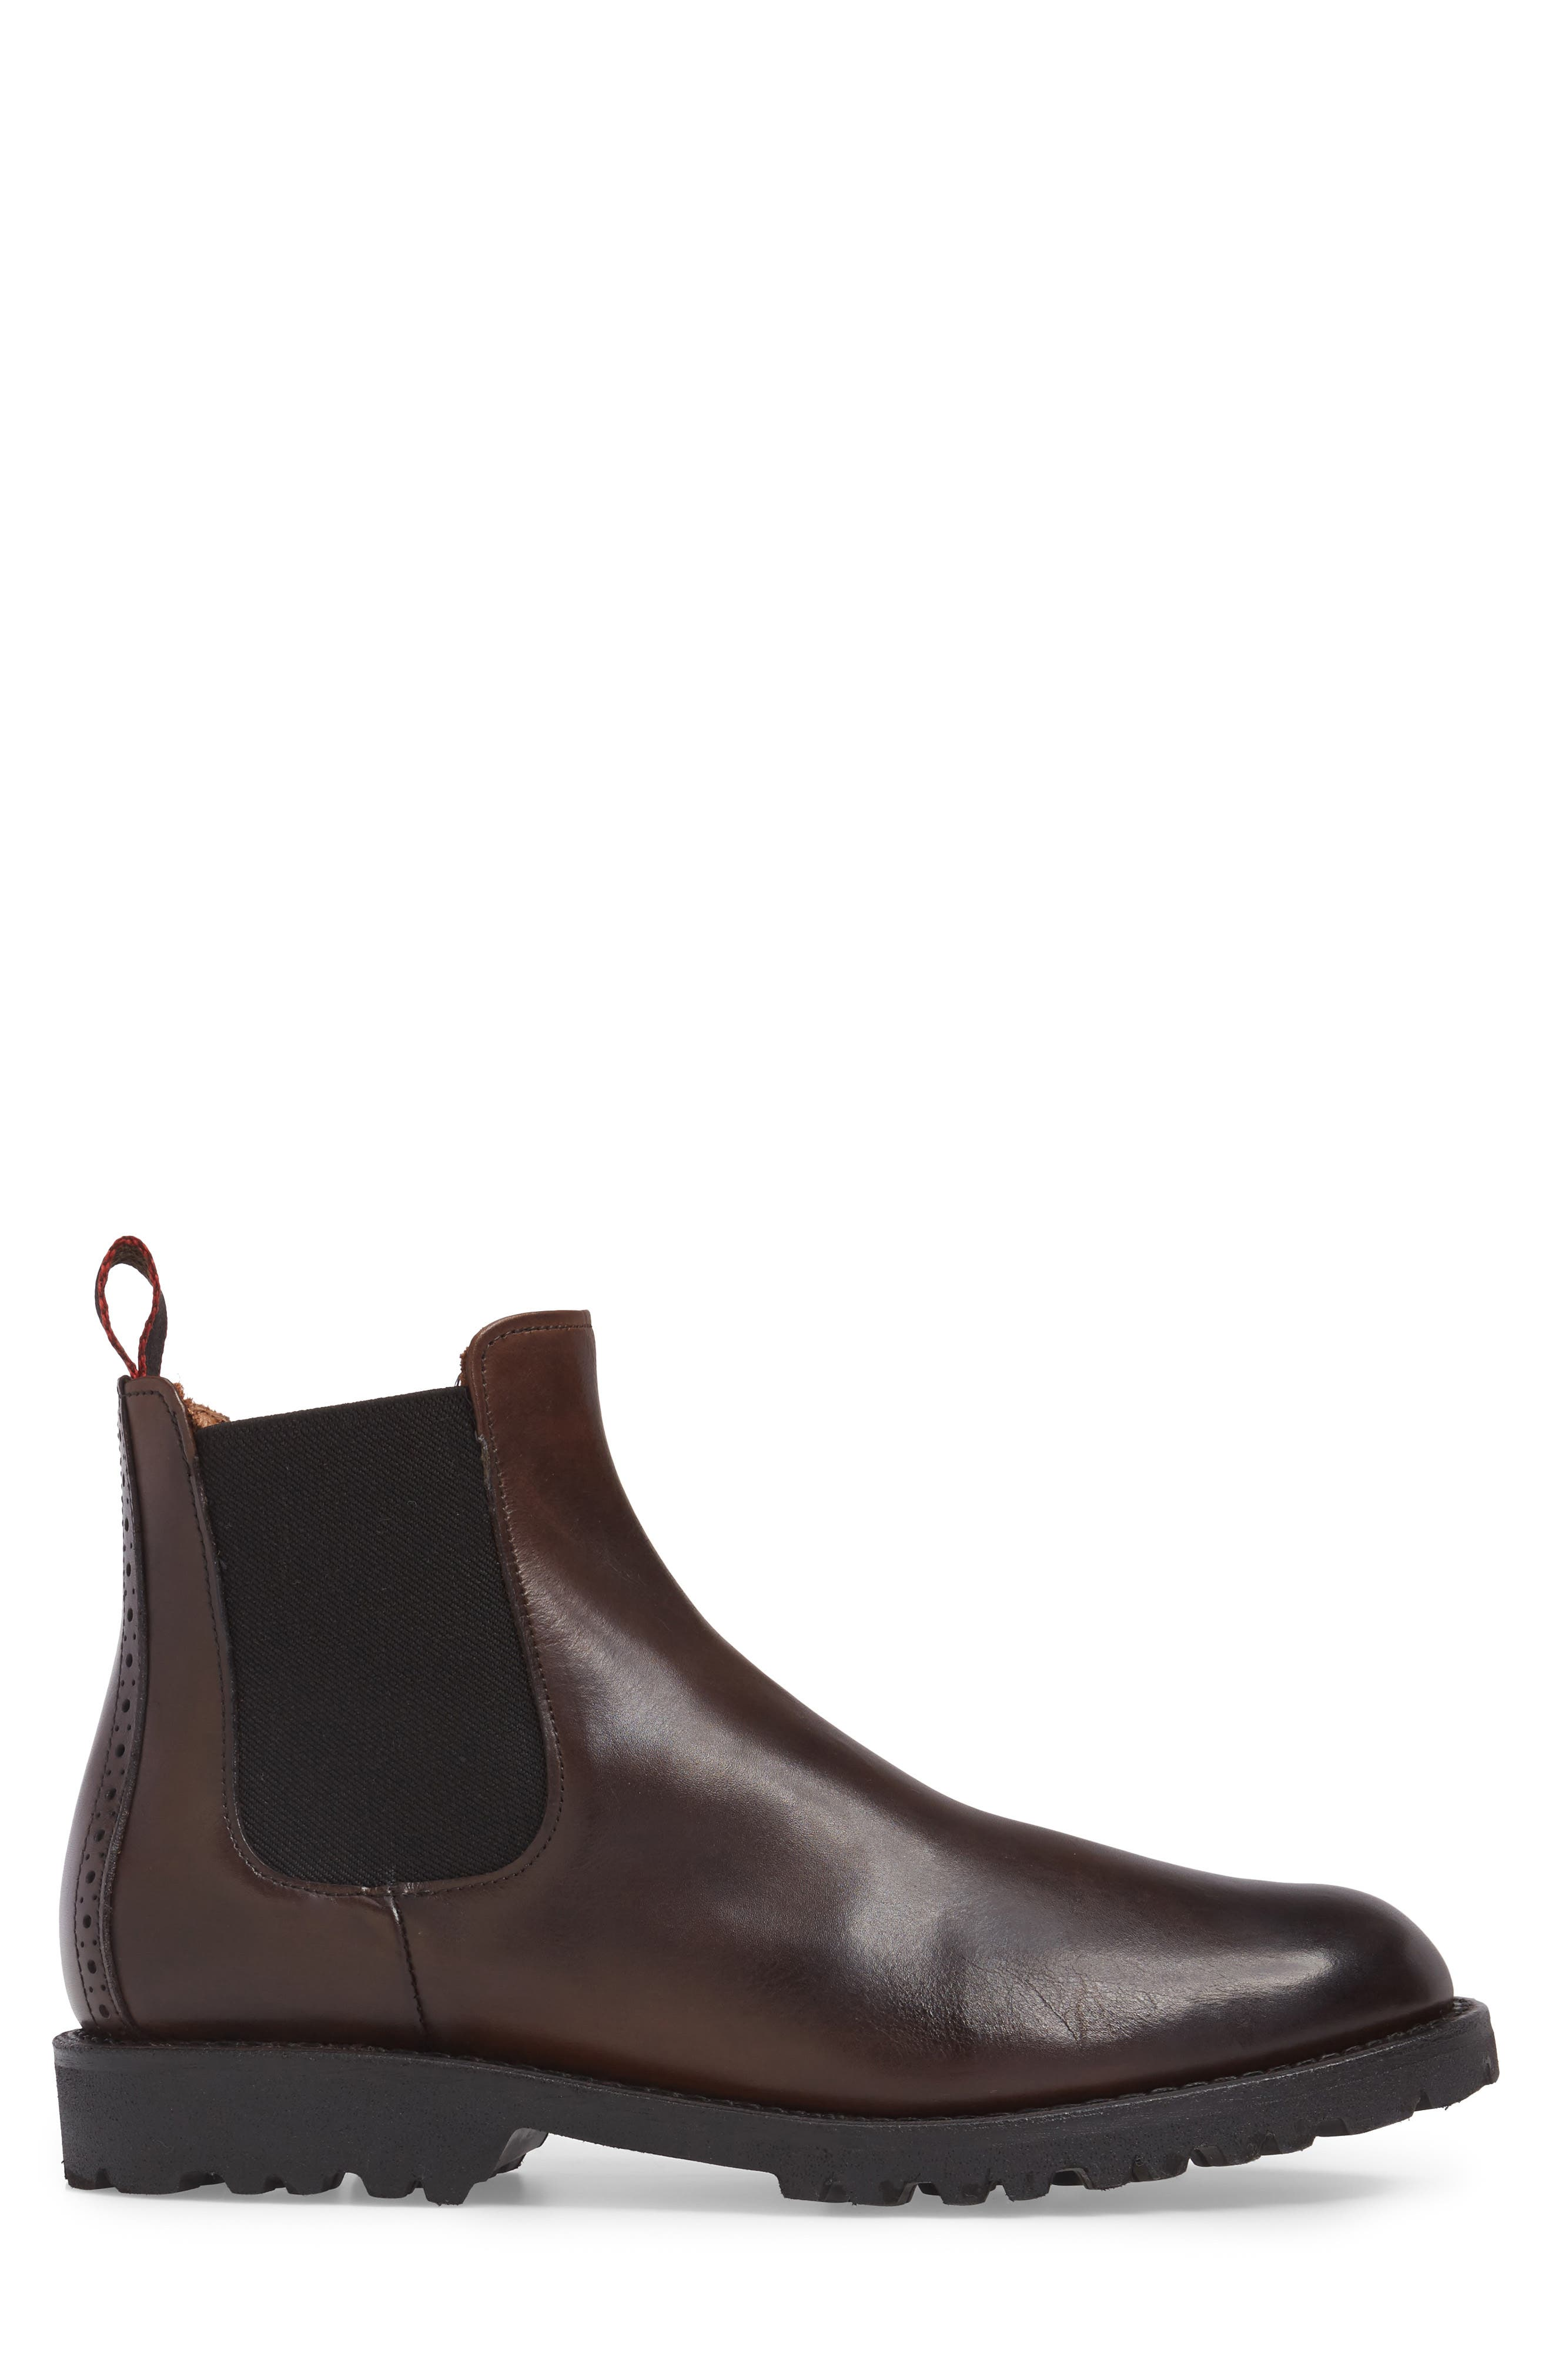 Tate Chelsea Boot,                             Alternate thumbnail 3, color,                             Brown Leather